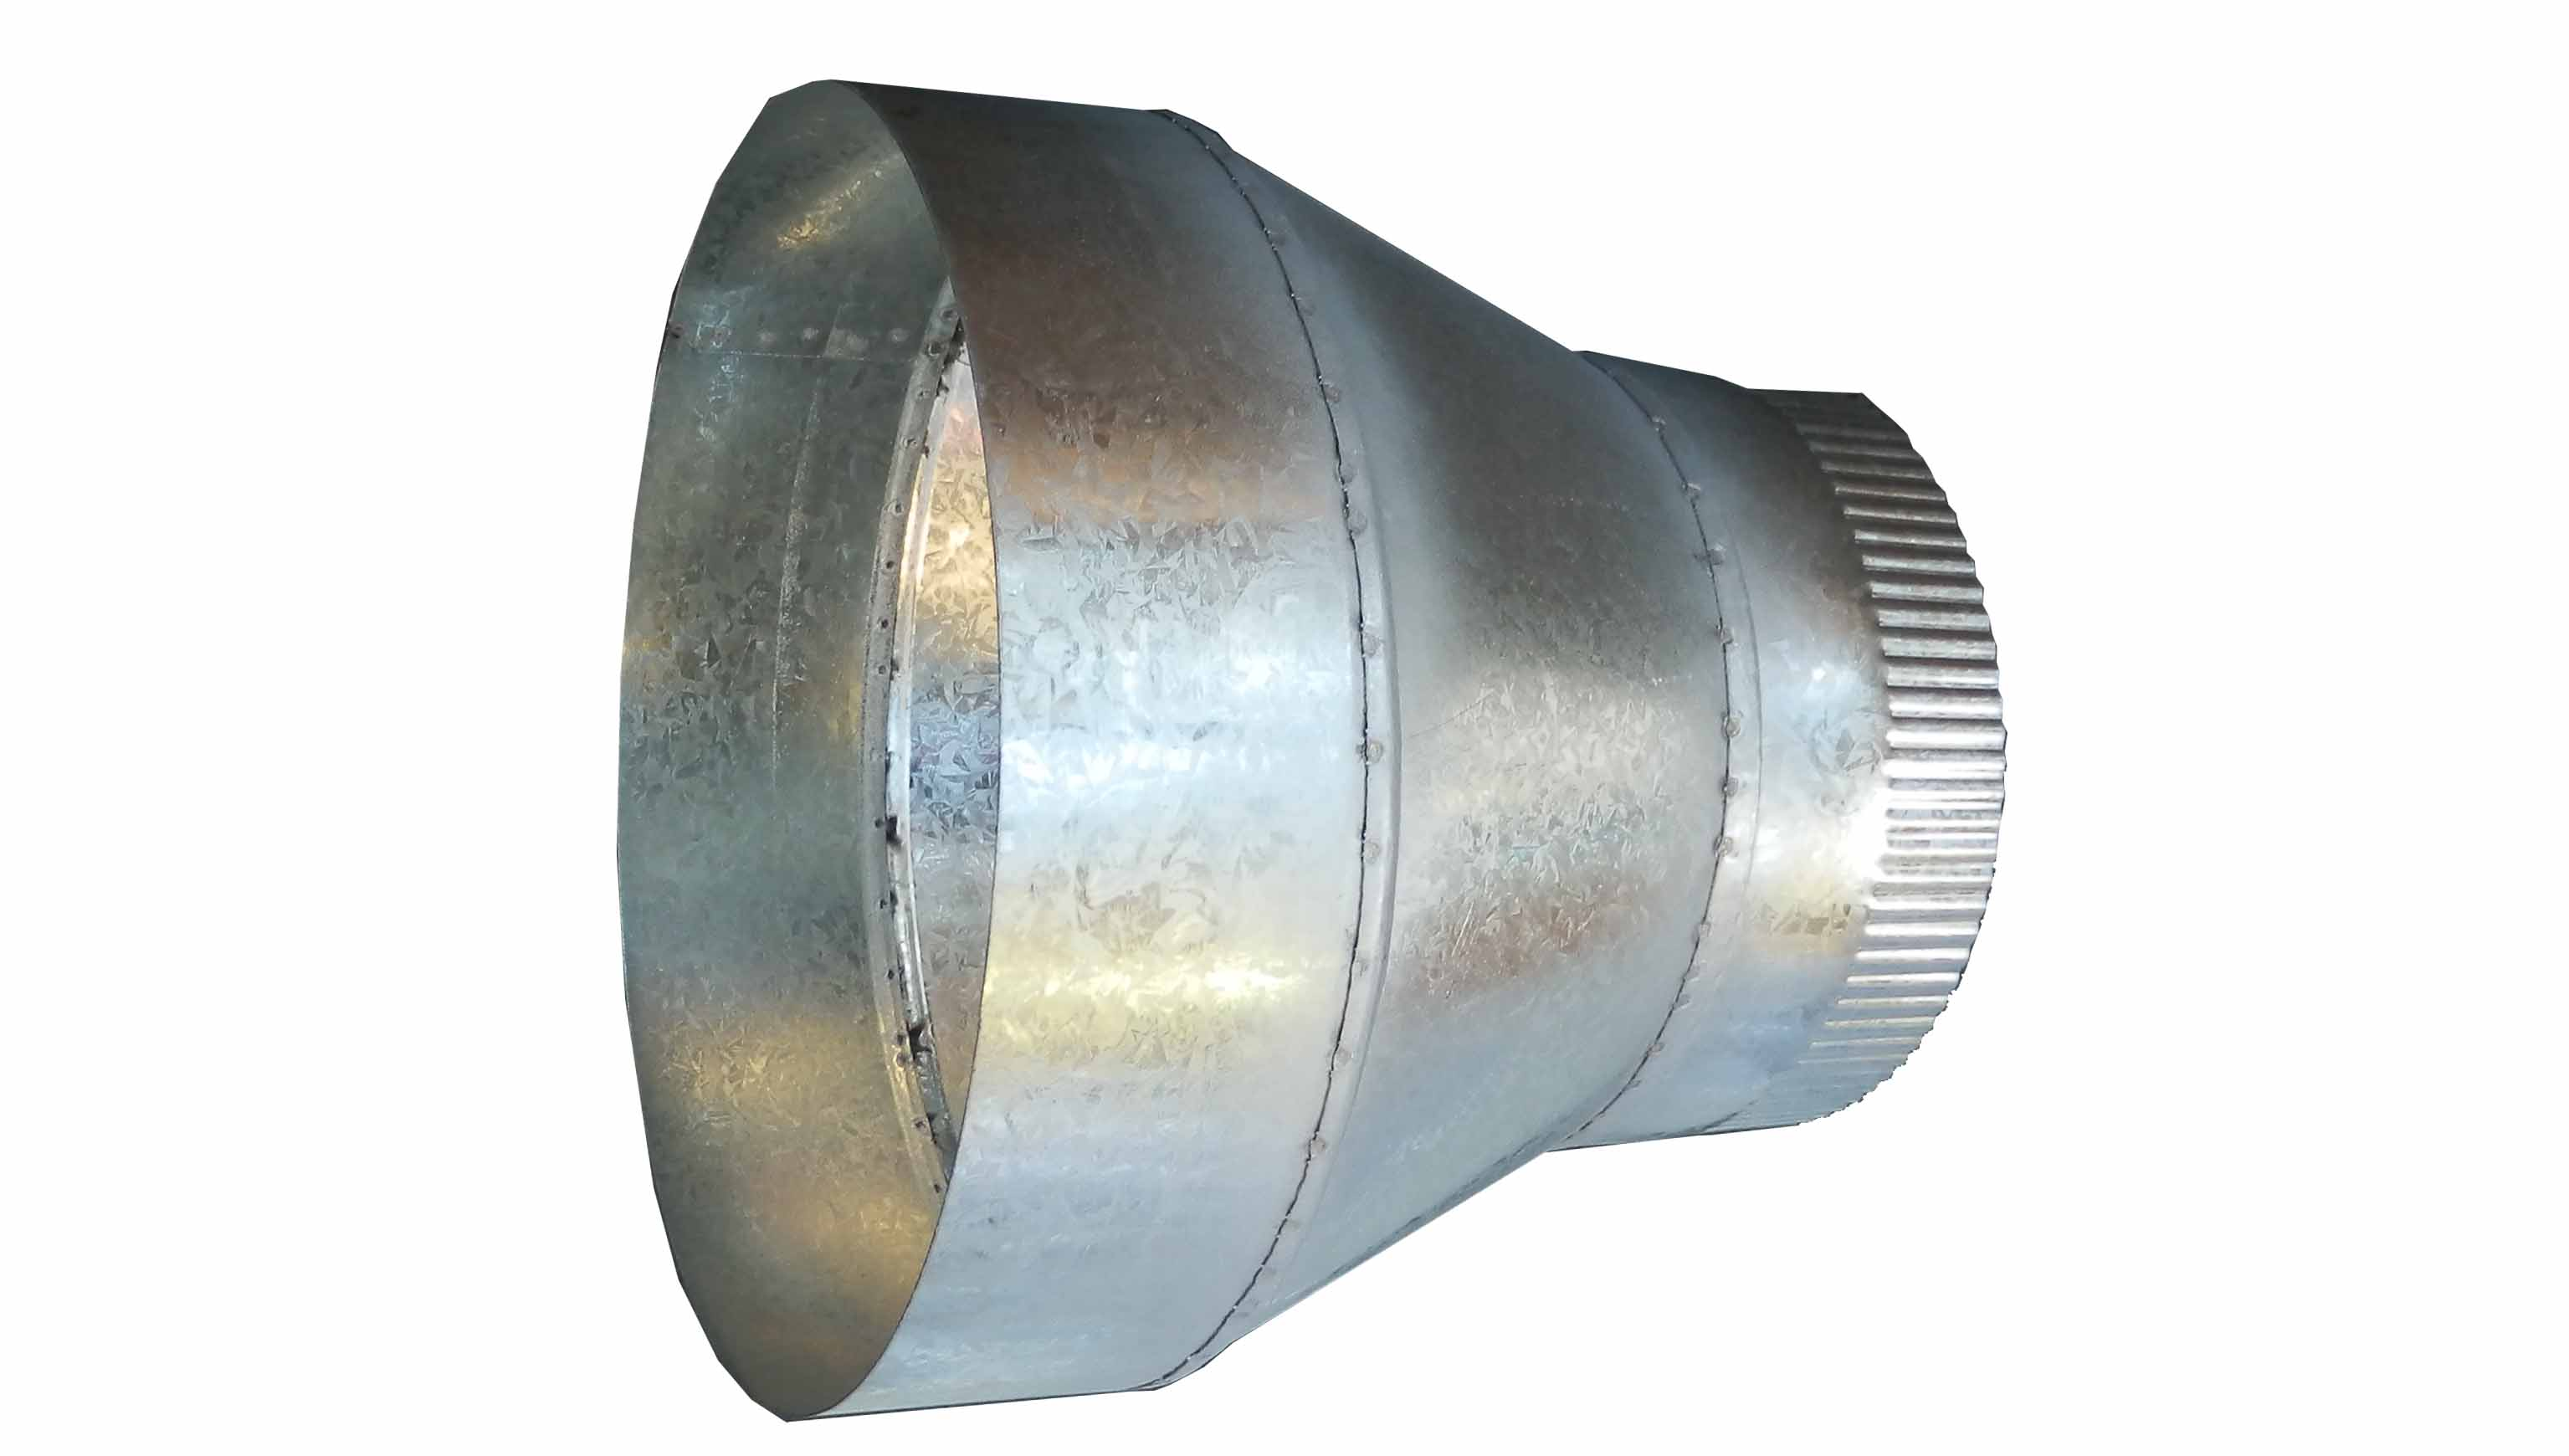 #7D704E Smooth Air Products Ltd Most Effective 2425 Duct Hose Fittings pictures with 3070x1740 px on helpvideos.info - Air Conditioners, Air Coolers and more